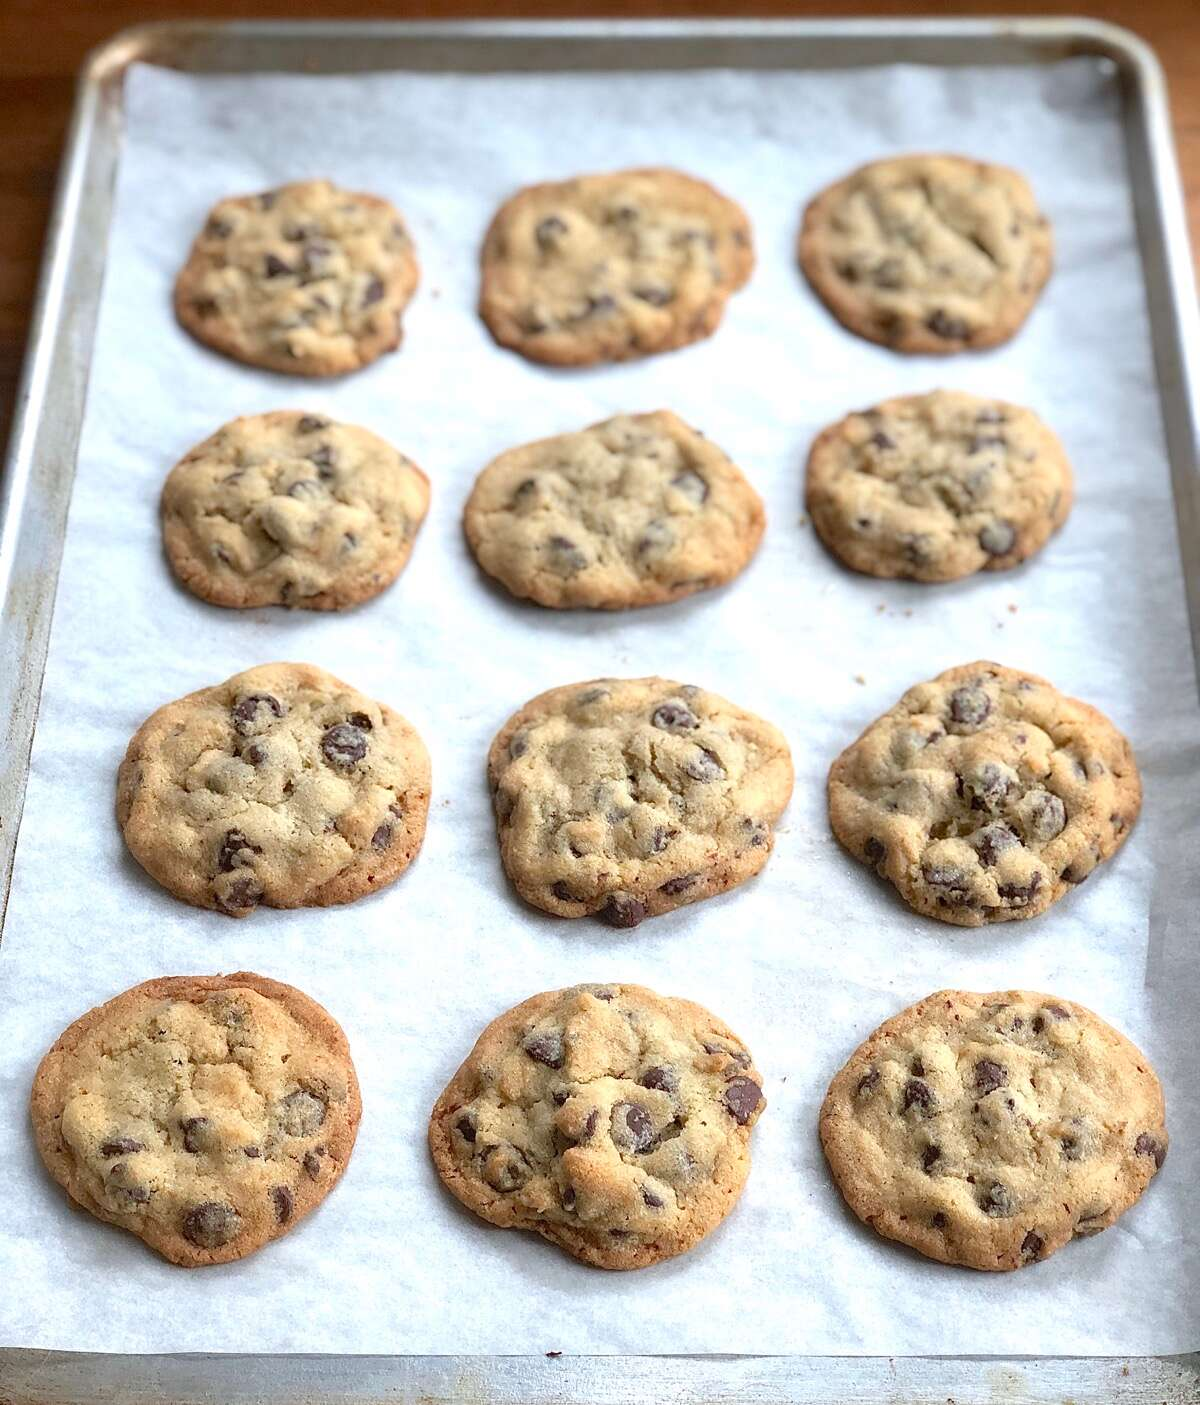 Rows of baked chocolate chip cookies on a parchment-lined baking sheet.